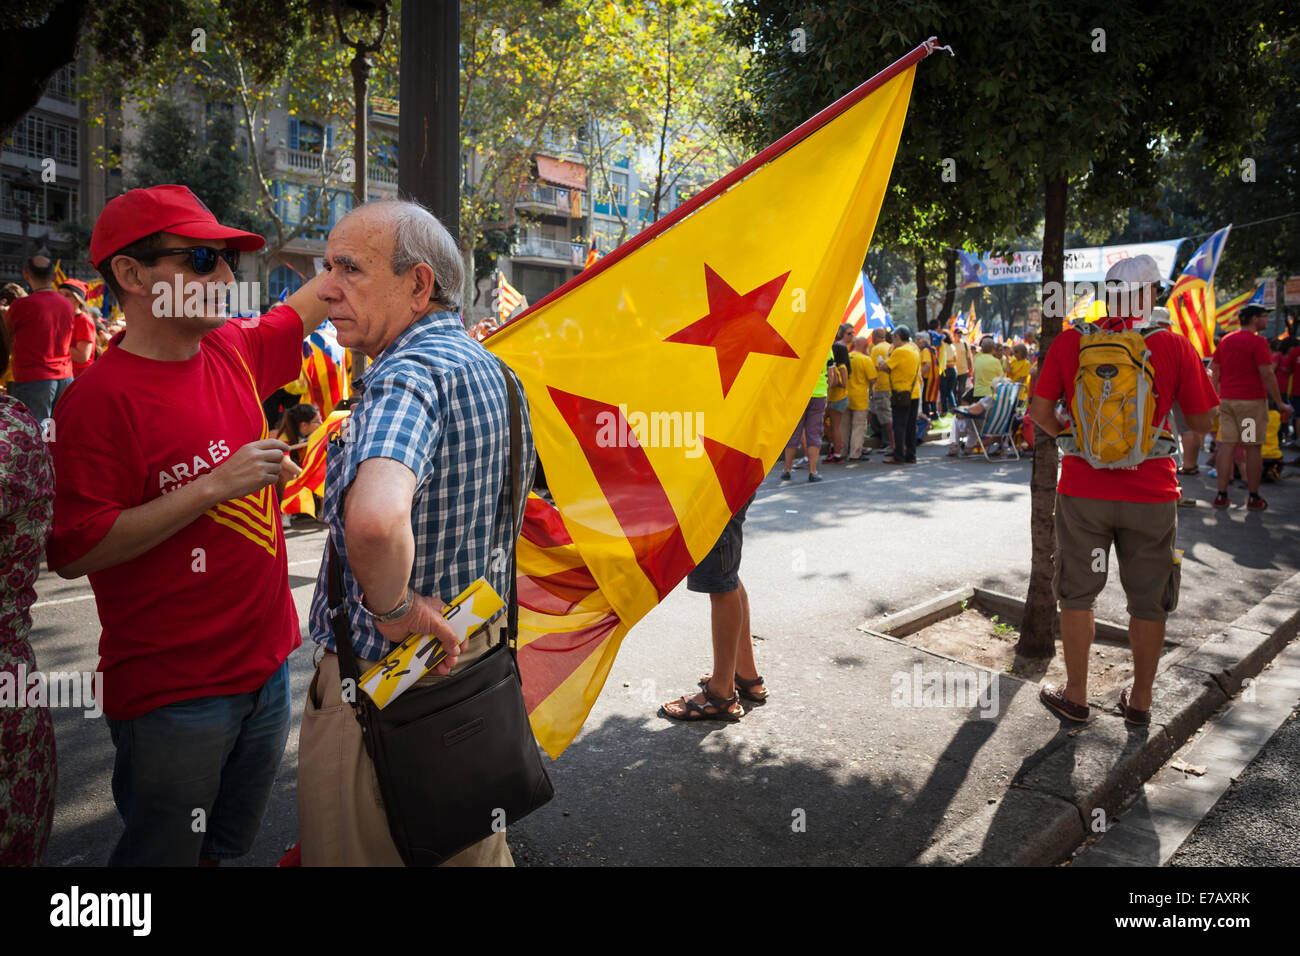 Barcelona, Catalonia, Spain. 11th September 2014. Catalan ...